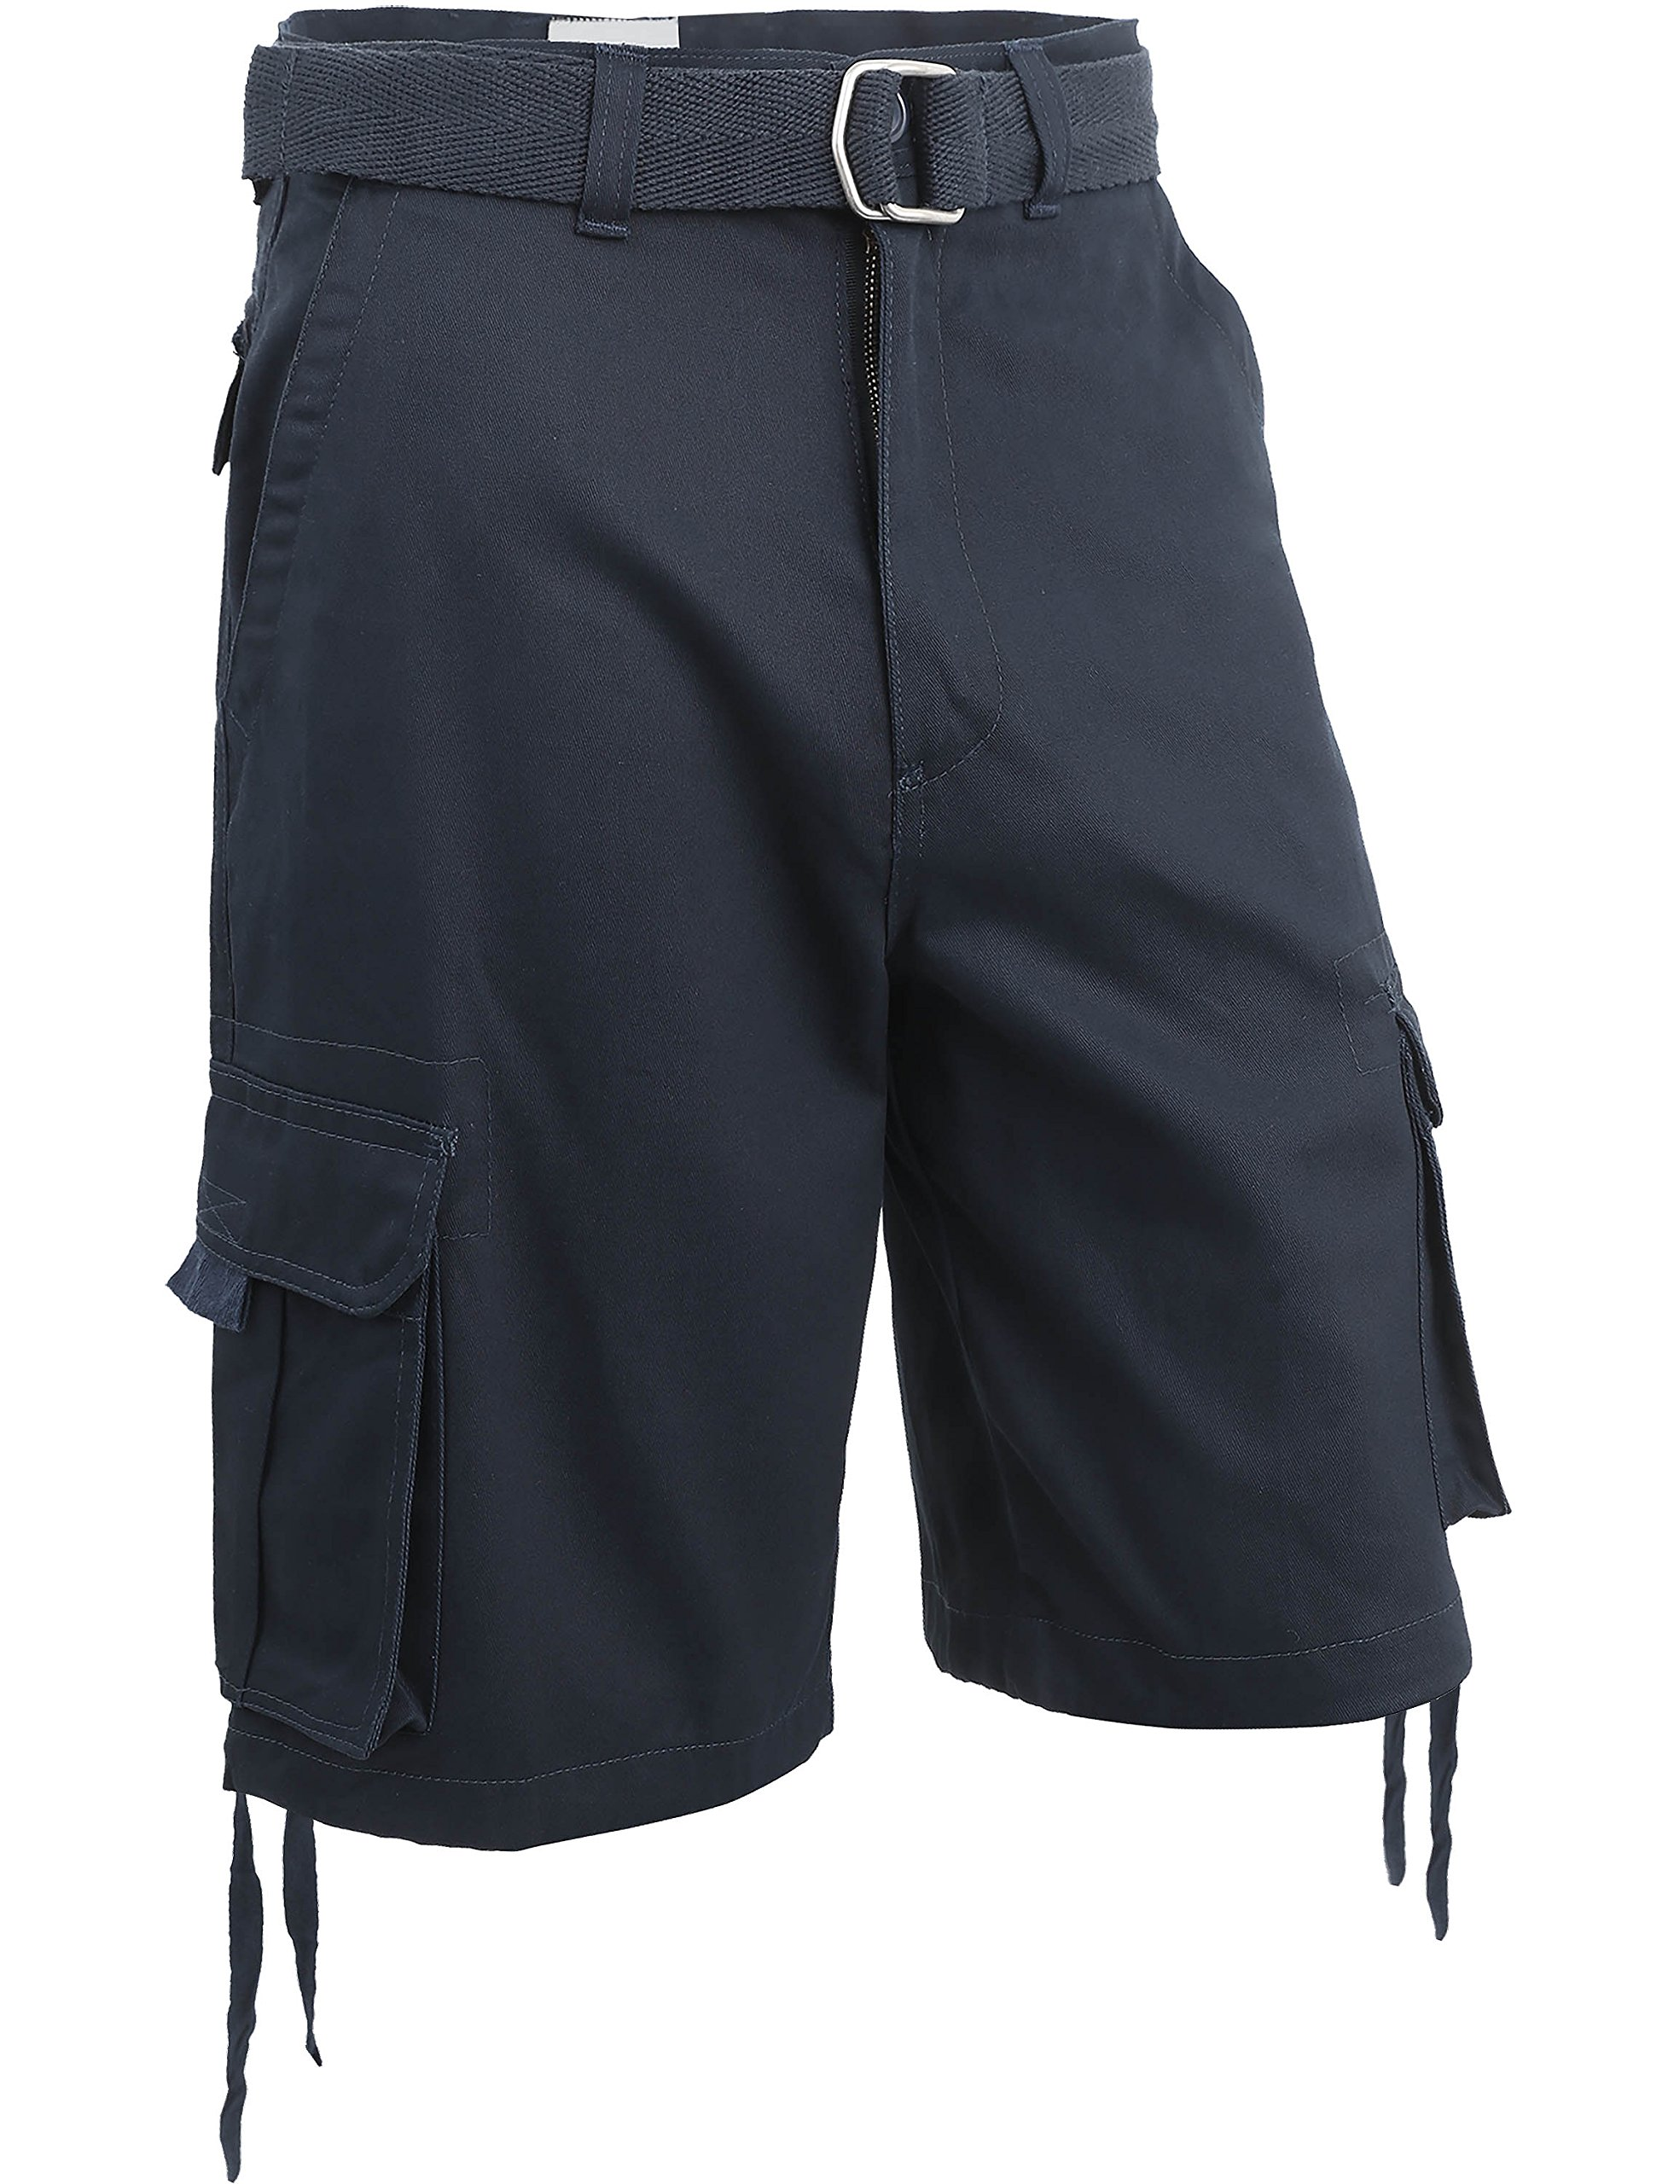 Hat and Beyond IH Mens Twill Cargo Shorts with Belt Loose Fit Cotton Multi Pocket Outerwear (50/b. iha03_Navy)